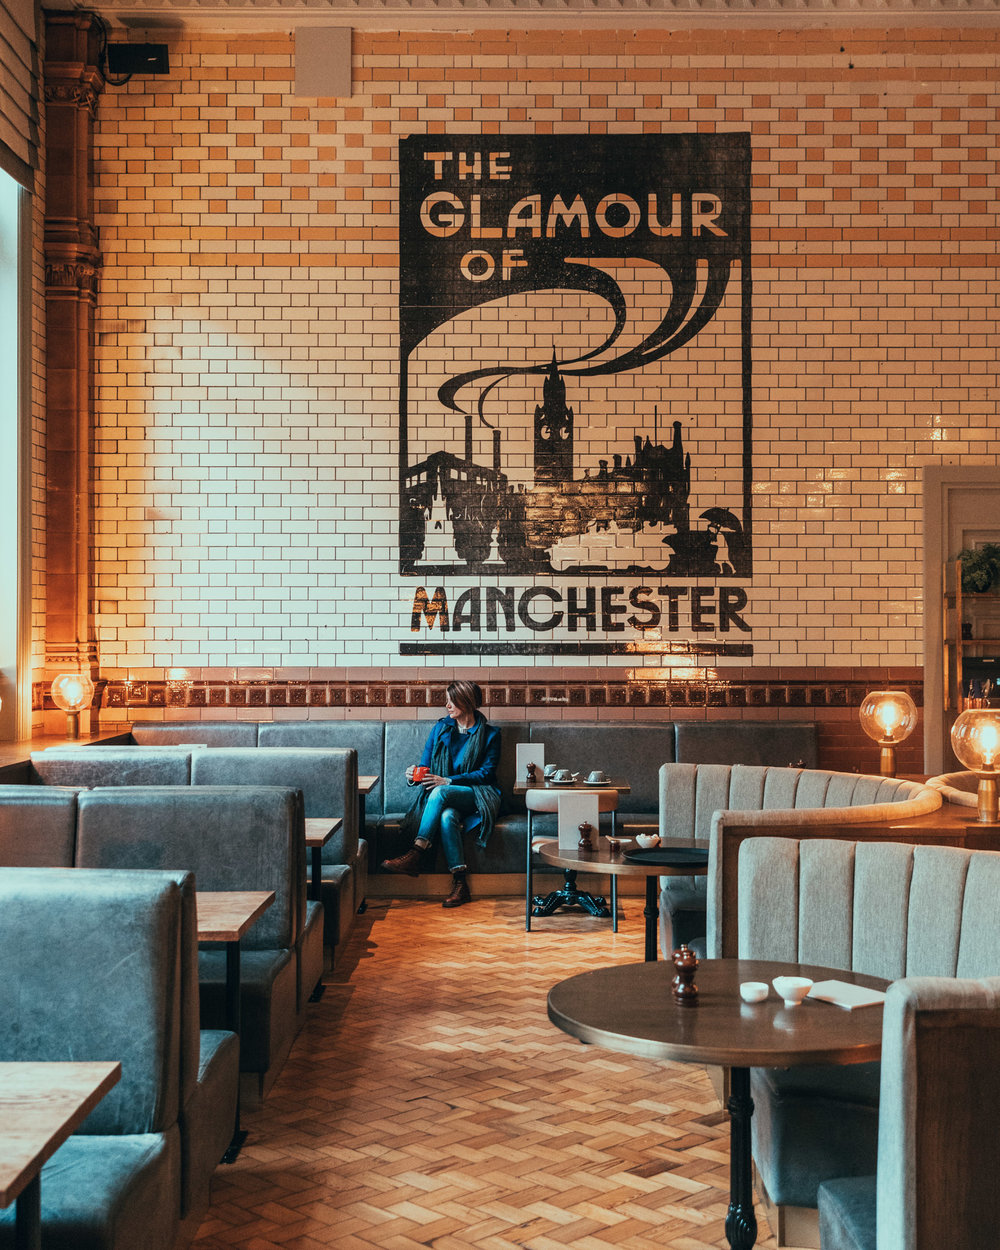 """The Glamour of Manchester"" at The Refuge // 11 INSTAGRAM-WORTHY PHOTO SPOTS IN MANCHESTER, ENGLAND // www.readysetjetset.net #readysetjetset #manchester #england #uk #unitedkingdom #cityguide #travel"